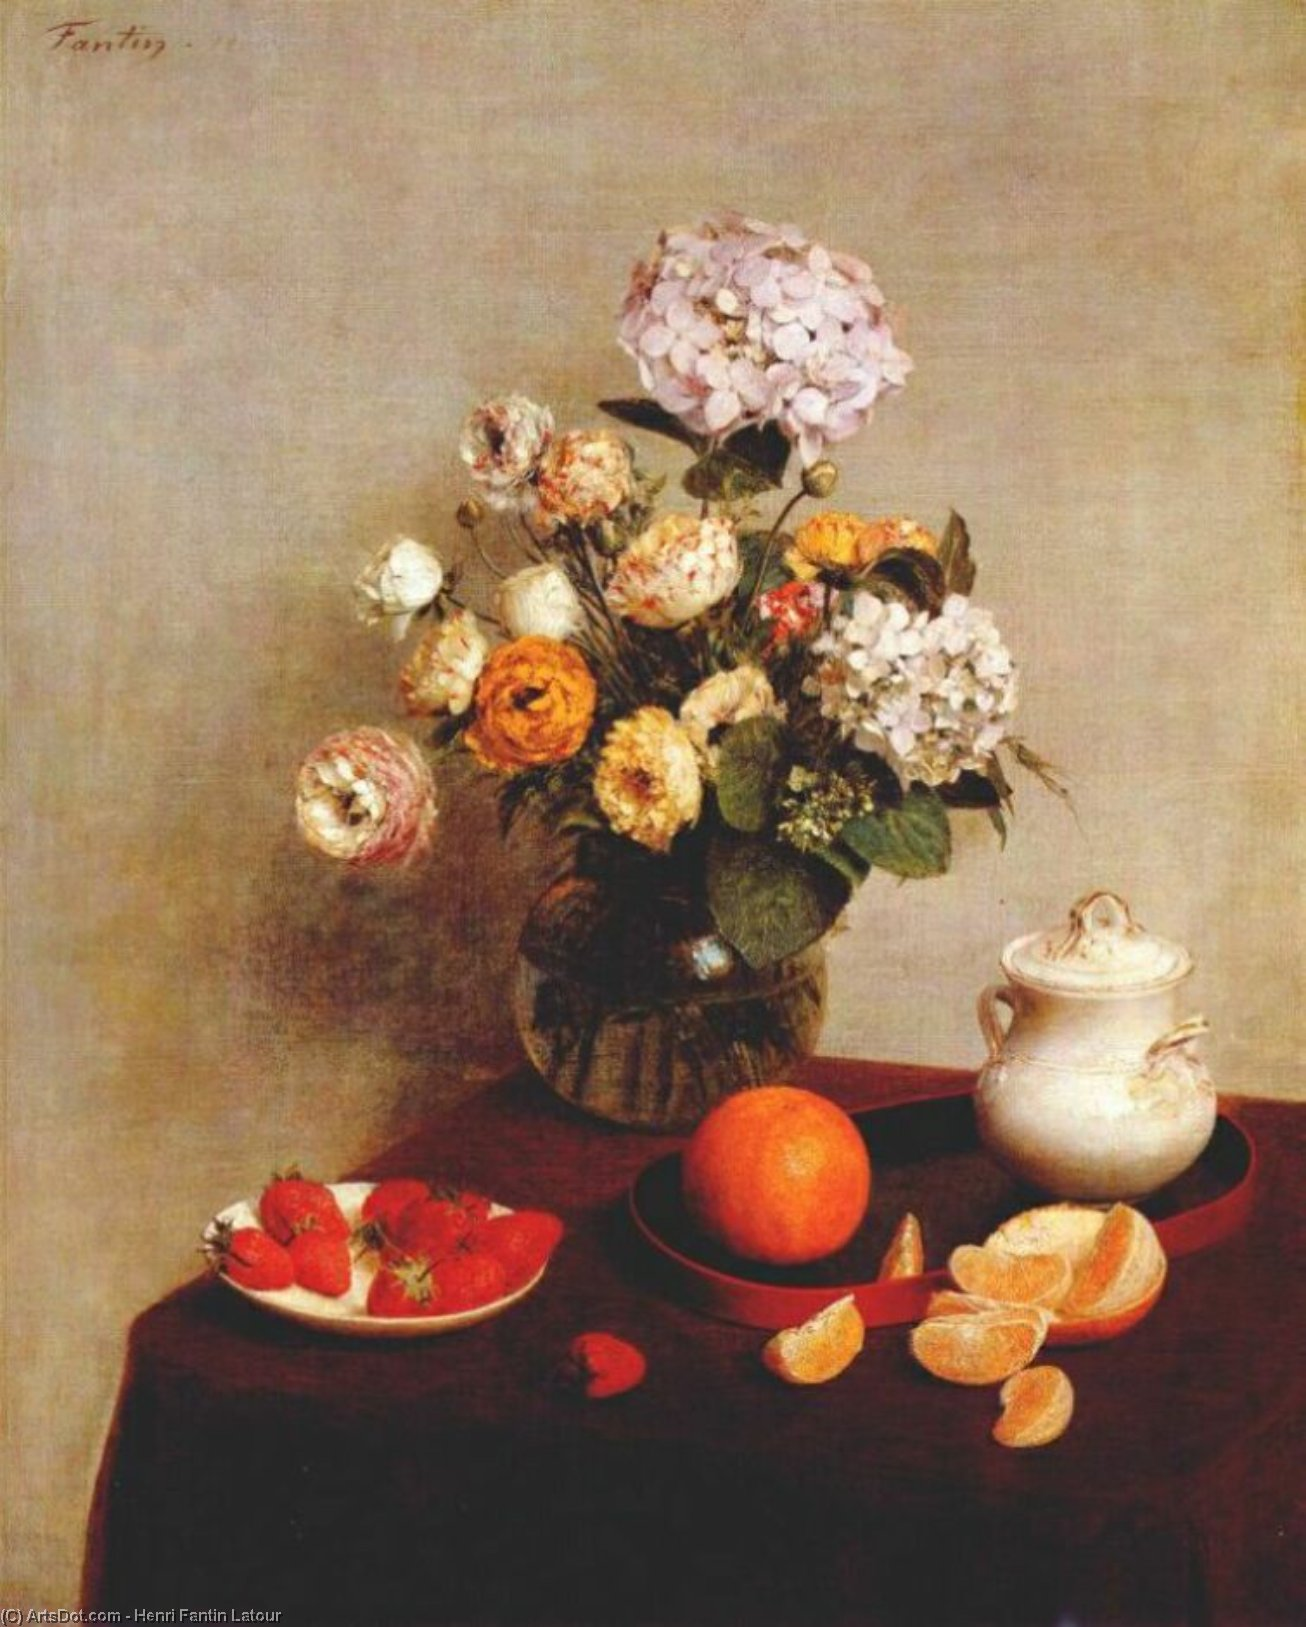 still life - vase of hydrangeas and ranunculus, 1866 by Henri Fantin Latour (1836-1904, France)